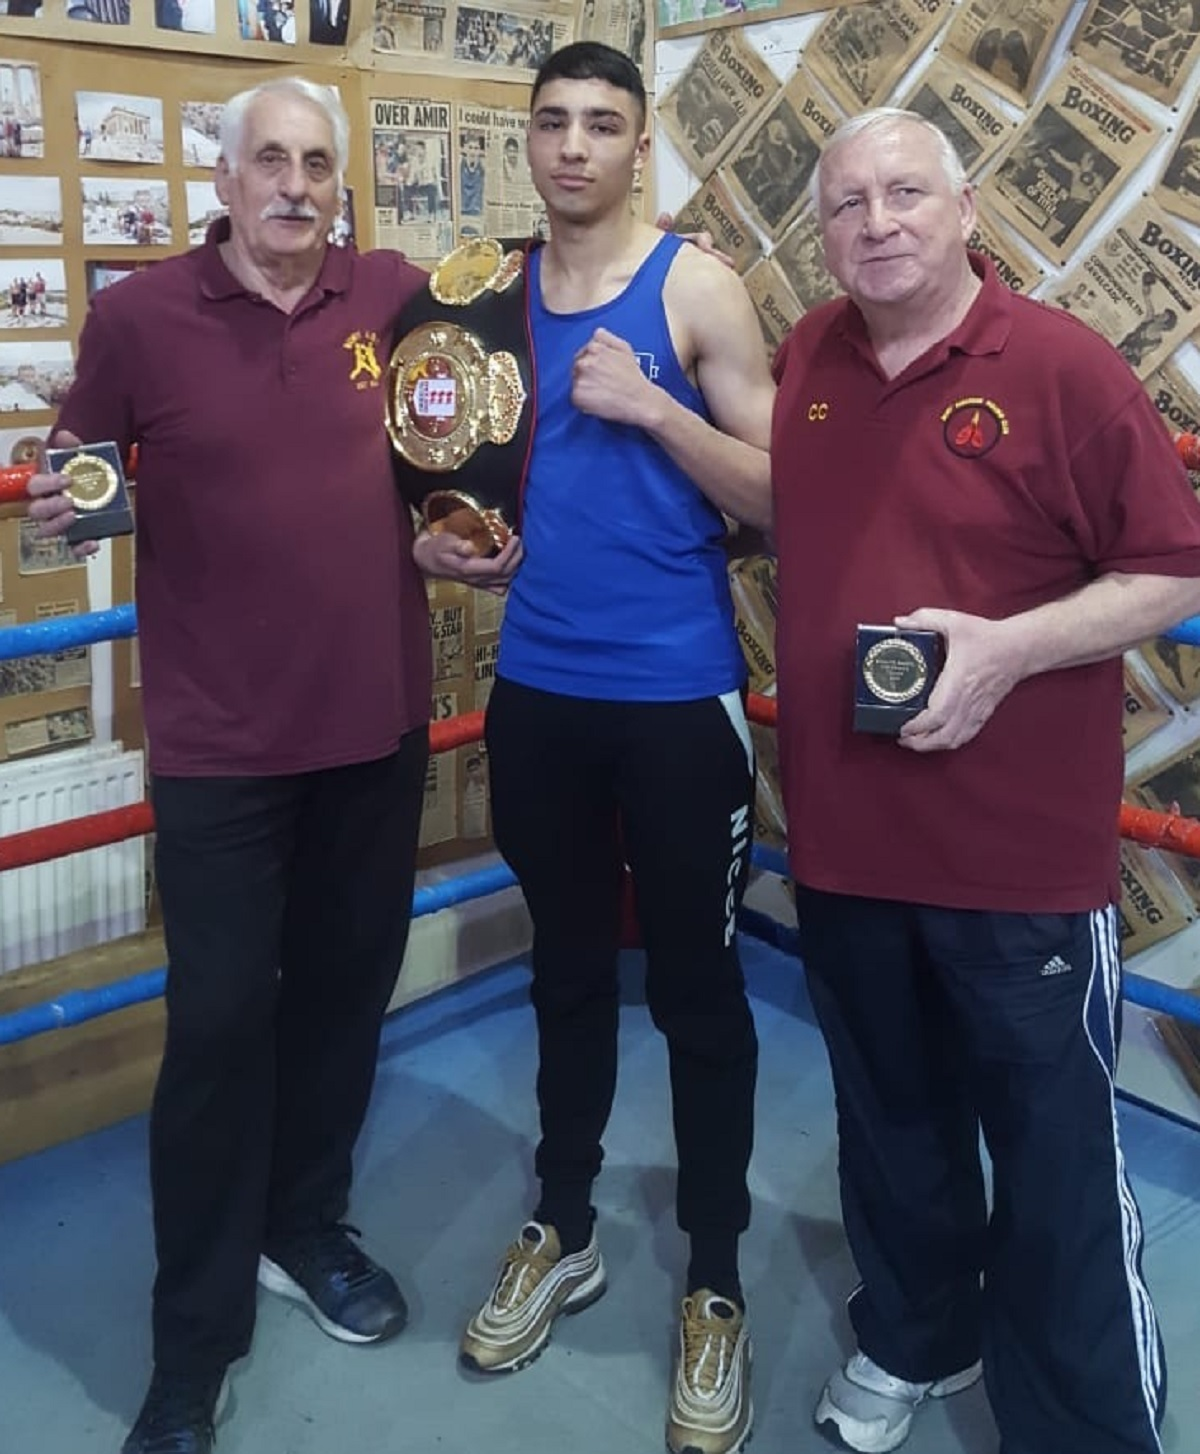 Keighley boxer Muhammed Ibrahim Nadim, with trainers at Bury ABC, Mick Jelley, left, and Colin Carr, poses with his 52-56kg category title belt won at the England Boxing National Amateur Championships 2019 Finals Day